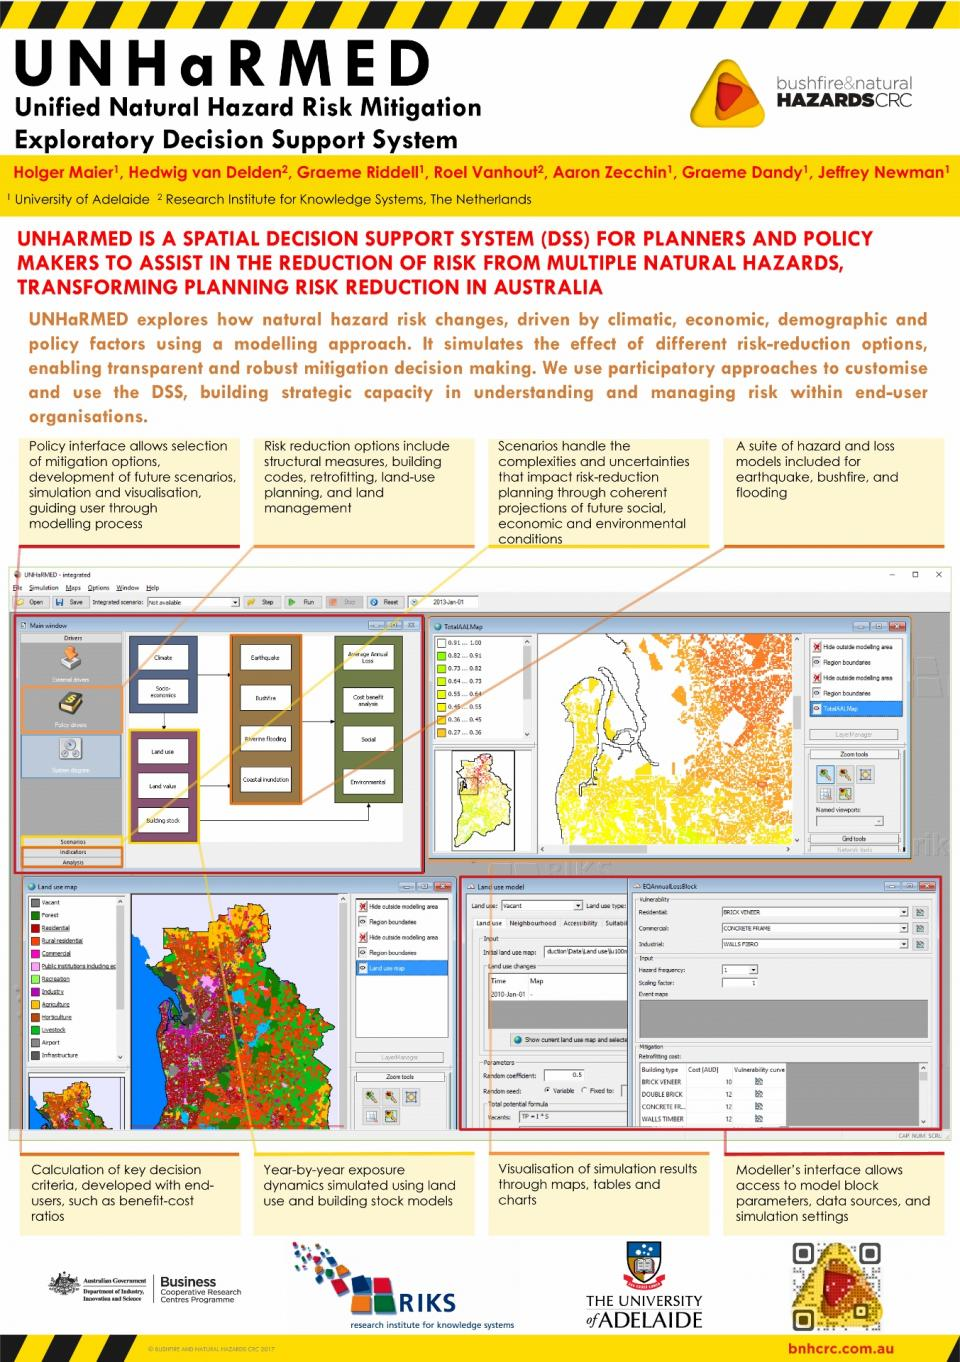 UNHaRMED: Unified Natural Hazard Risk Mitigation Exploratory Decision Support System